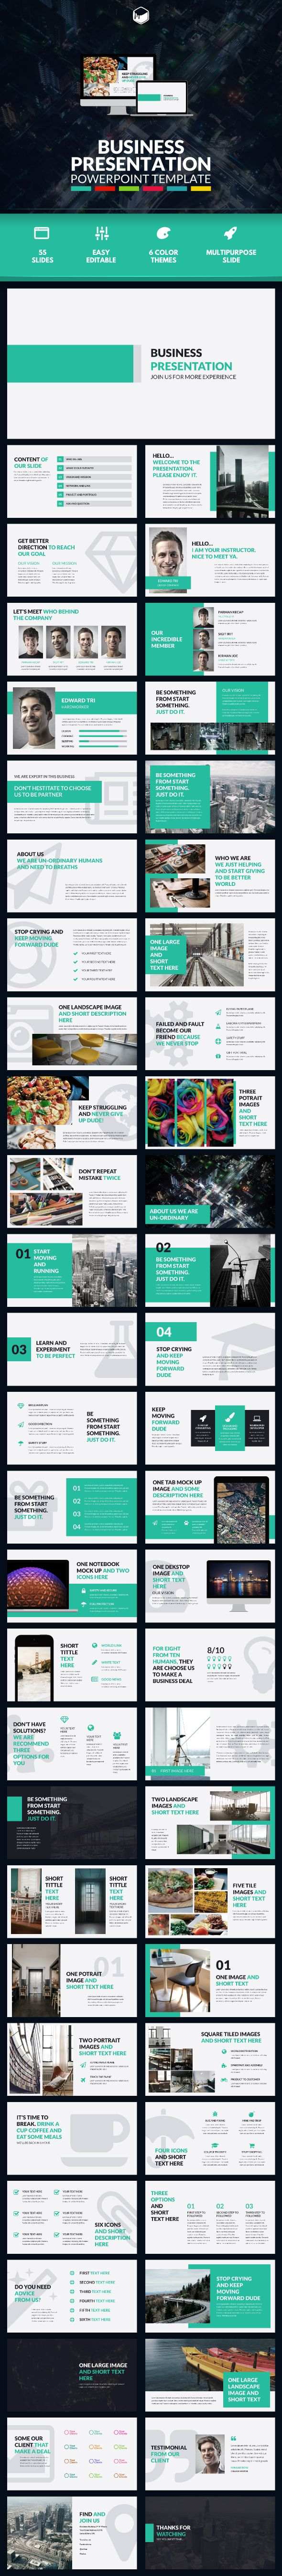 Business Presentation 3 - PowerPoint Template - #Business #PowerPoint #Templates Download here: https://graphicriver.net/item/business-presentation-3-powerpoint-template/18967885?ref=alena994